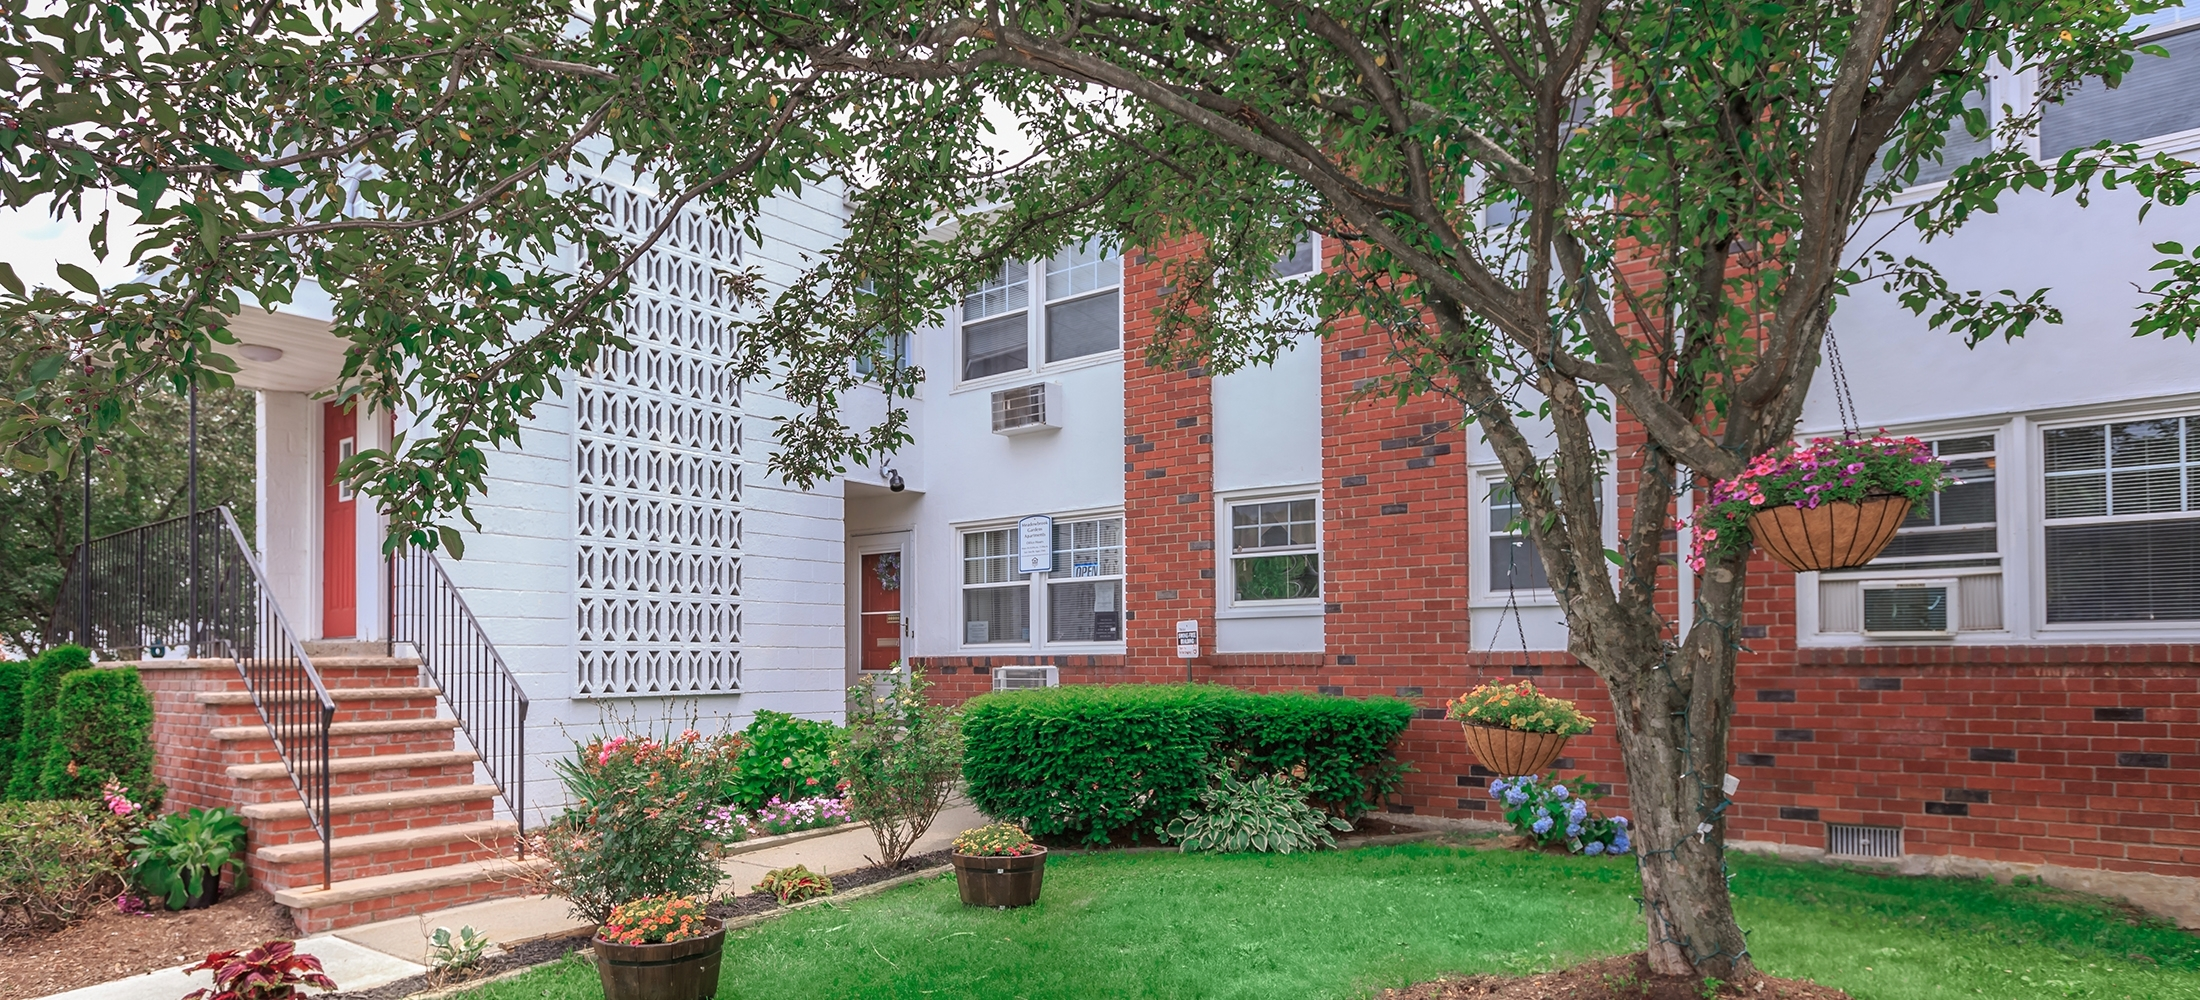 Meadowbrook Gardens - Apartments In Parsippany, Nj intended for Garden Apartments Nj